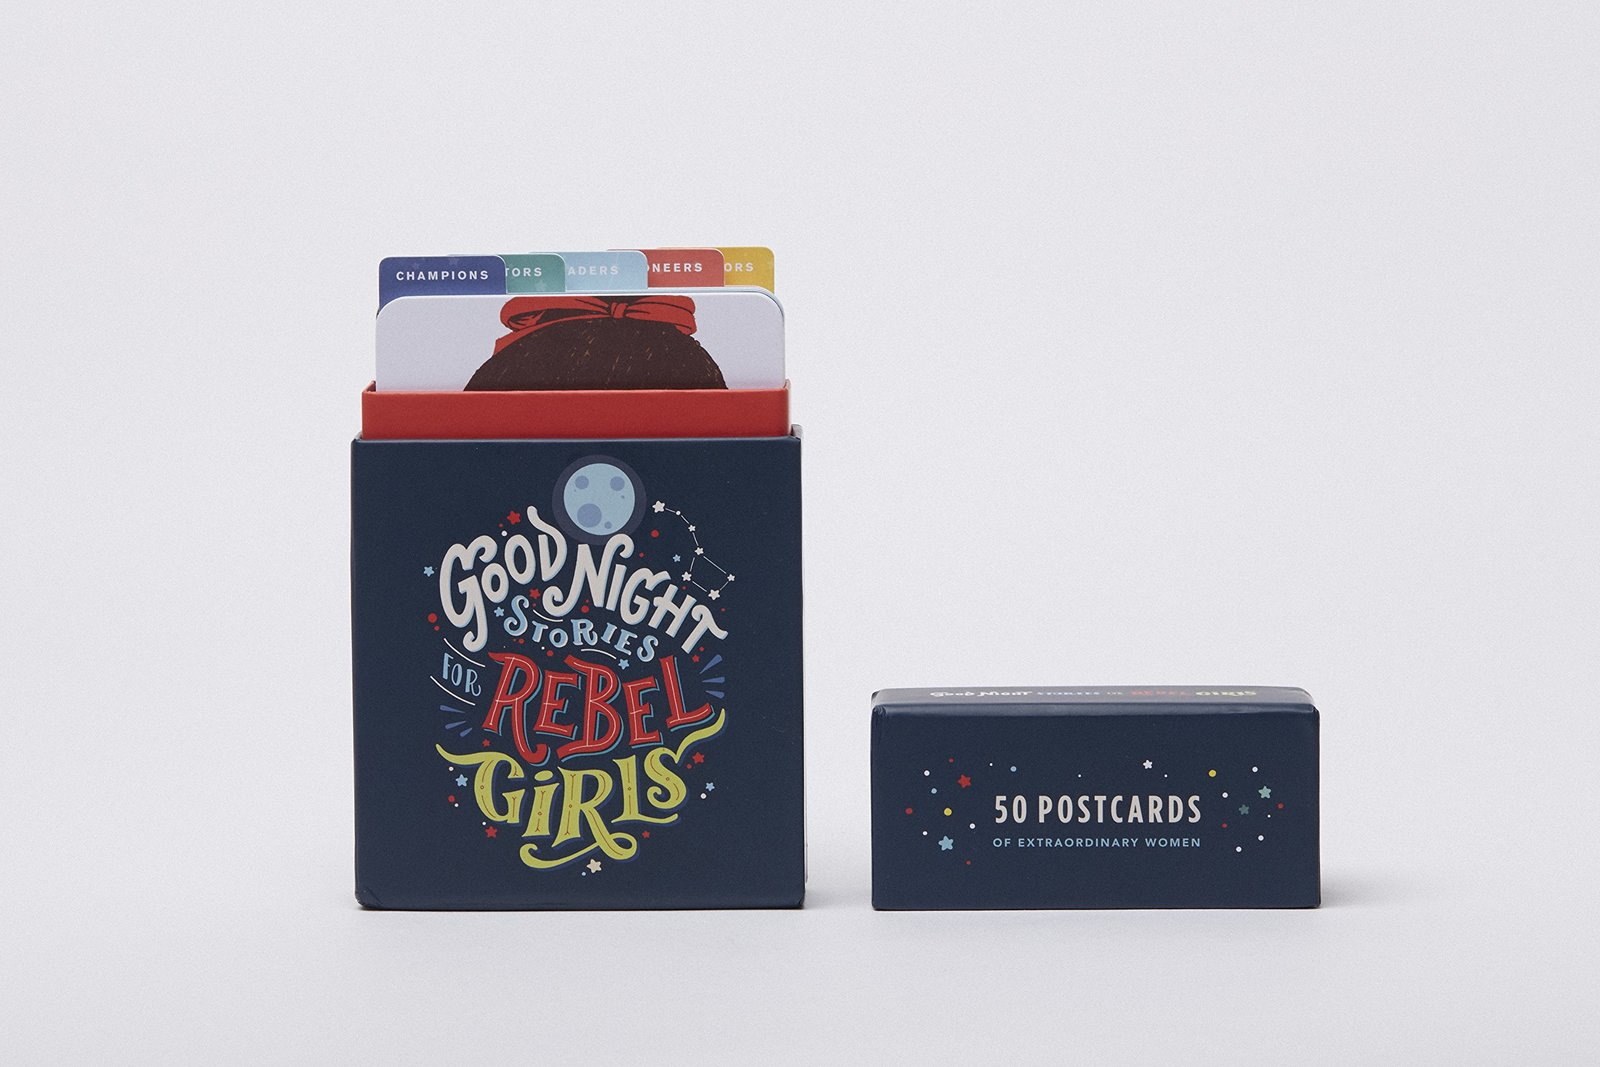 Good Night Stories for Rebel Girls: 50 Postcards by Elena Favilli image